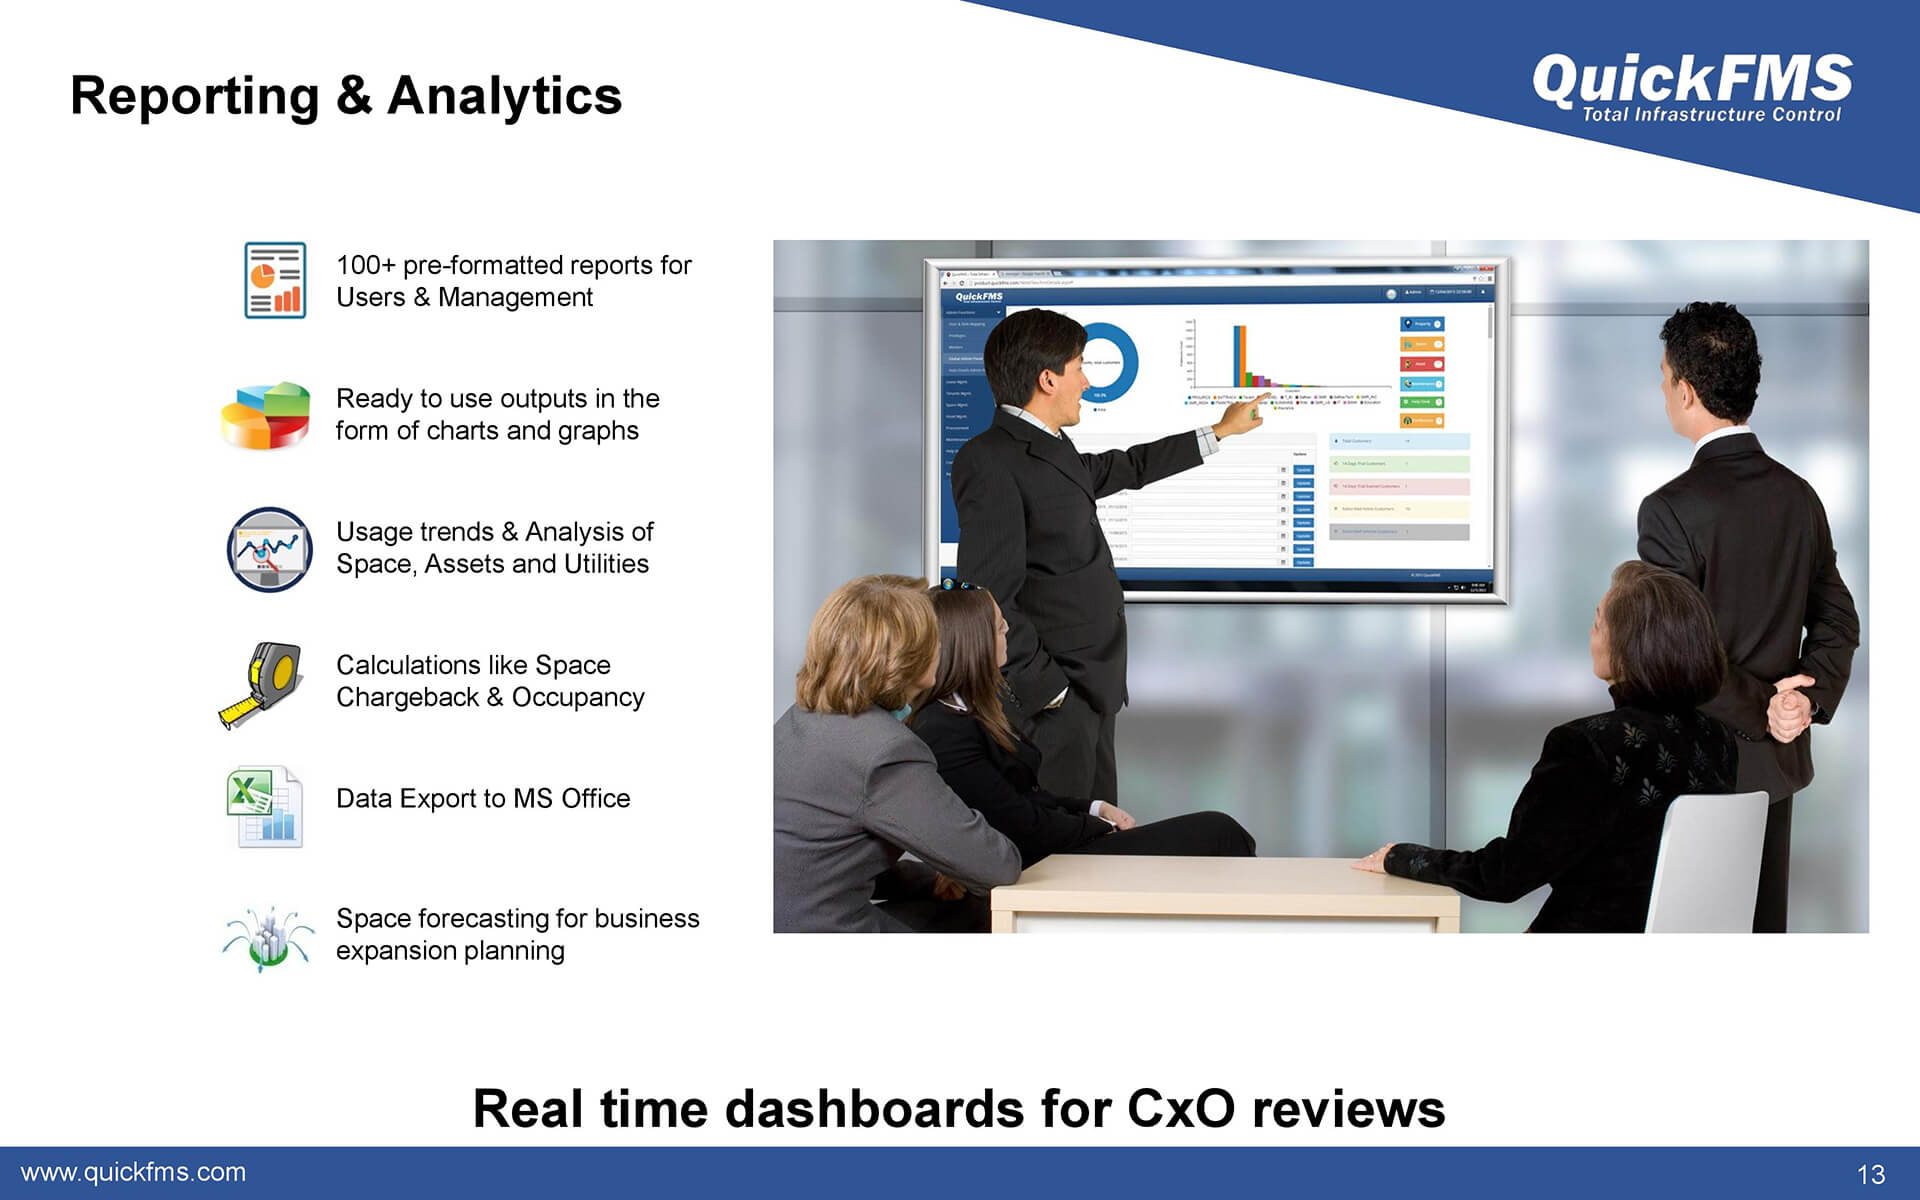 Overview presentation on Reporting & Analytics